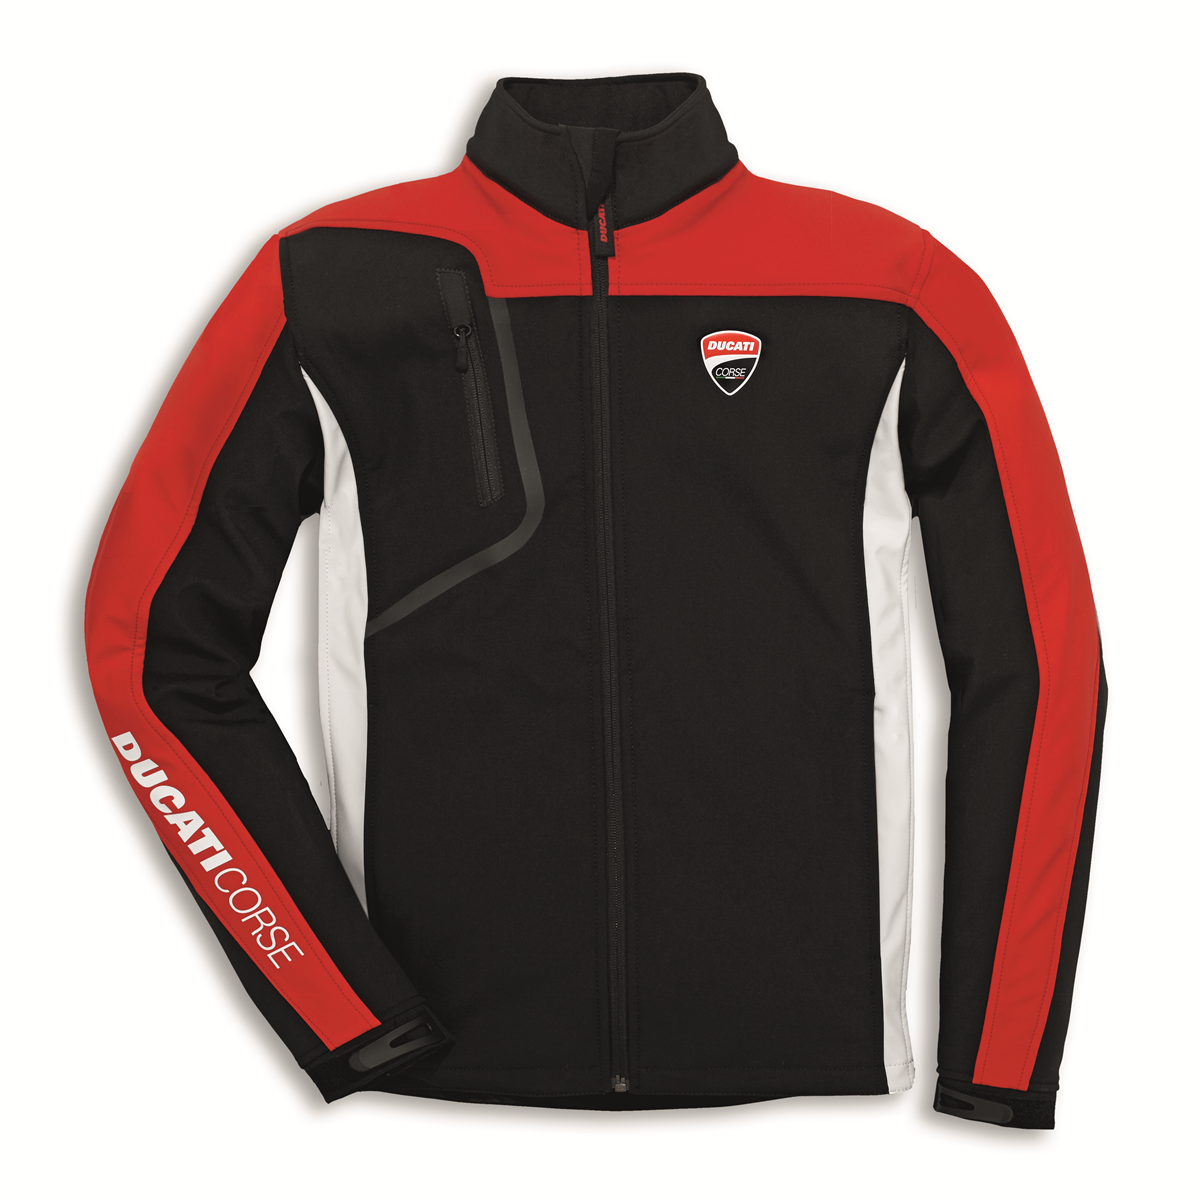 19a31080925 Ducati Corse Windproof 2 Jacket – M S Motorcycles Shop Newcastle